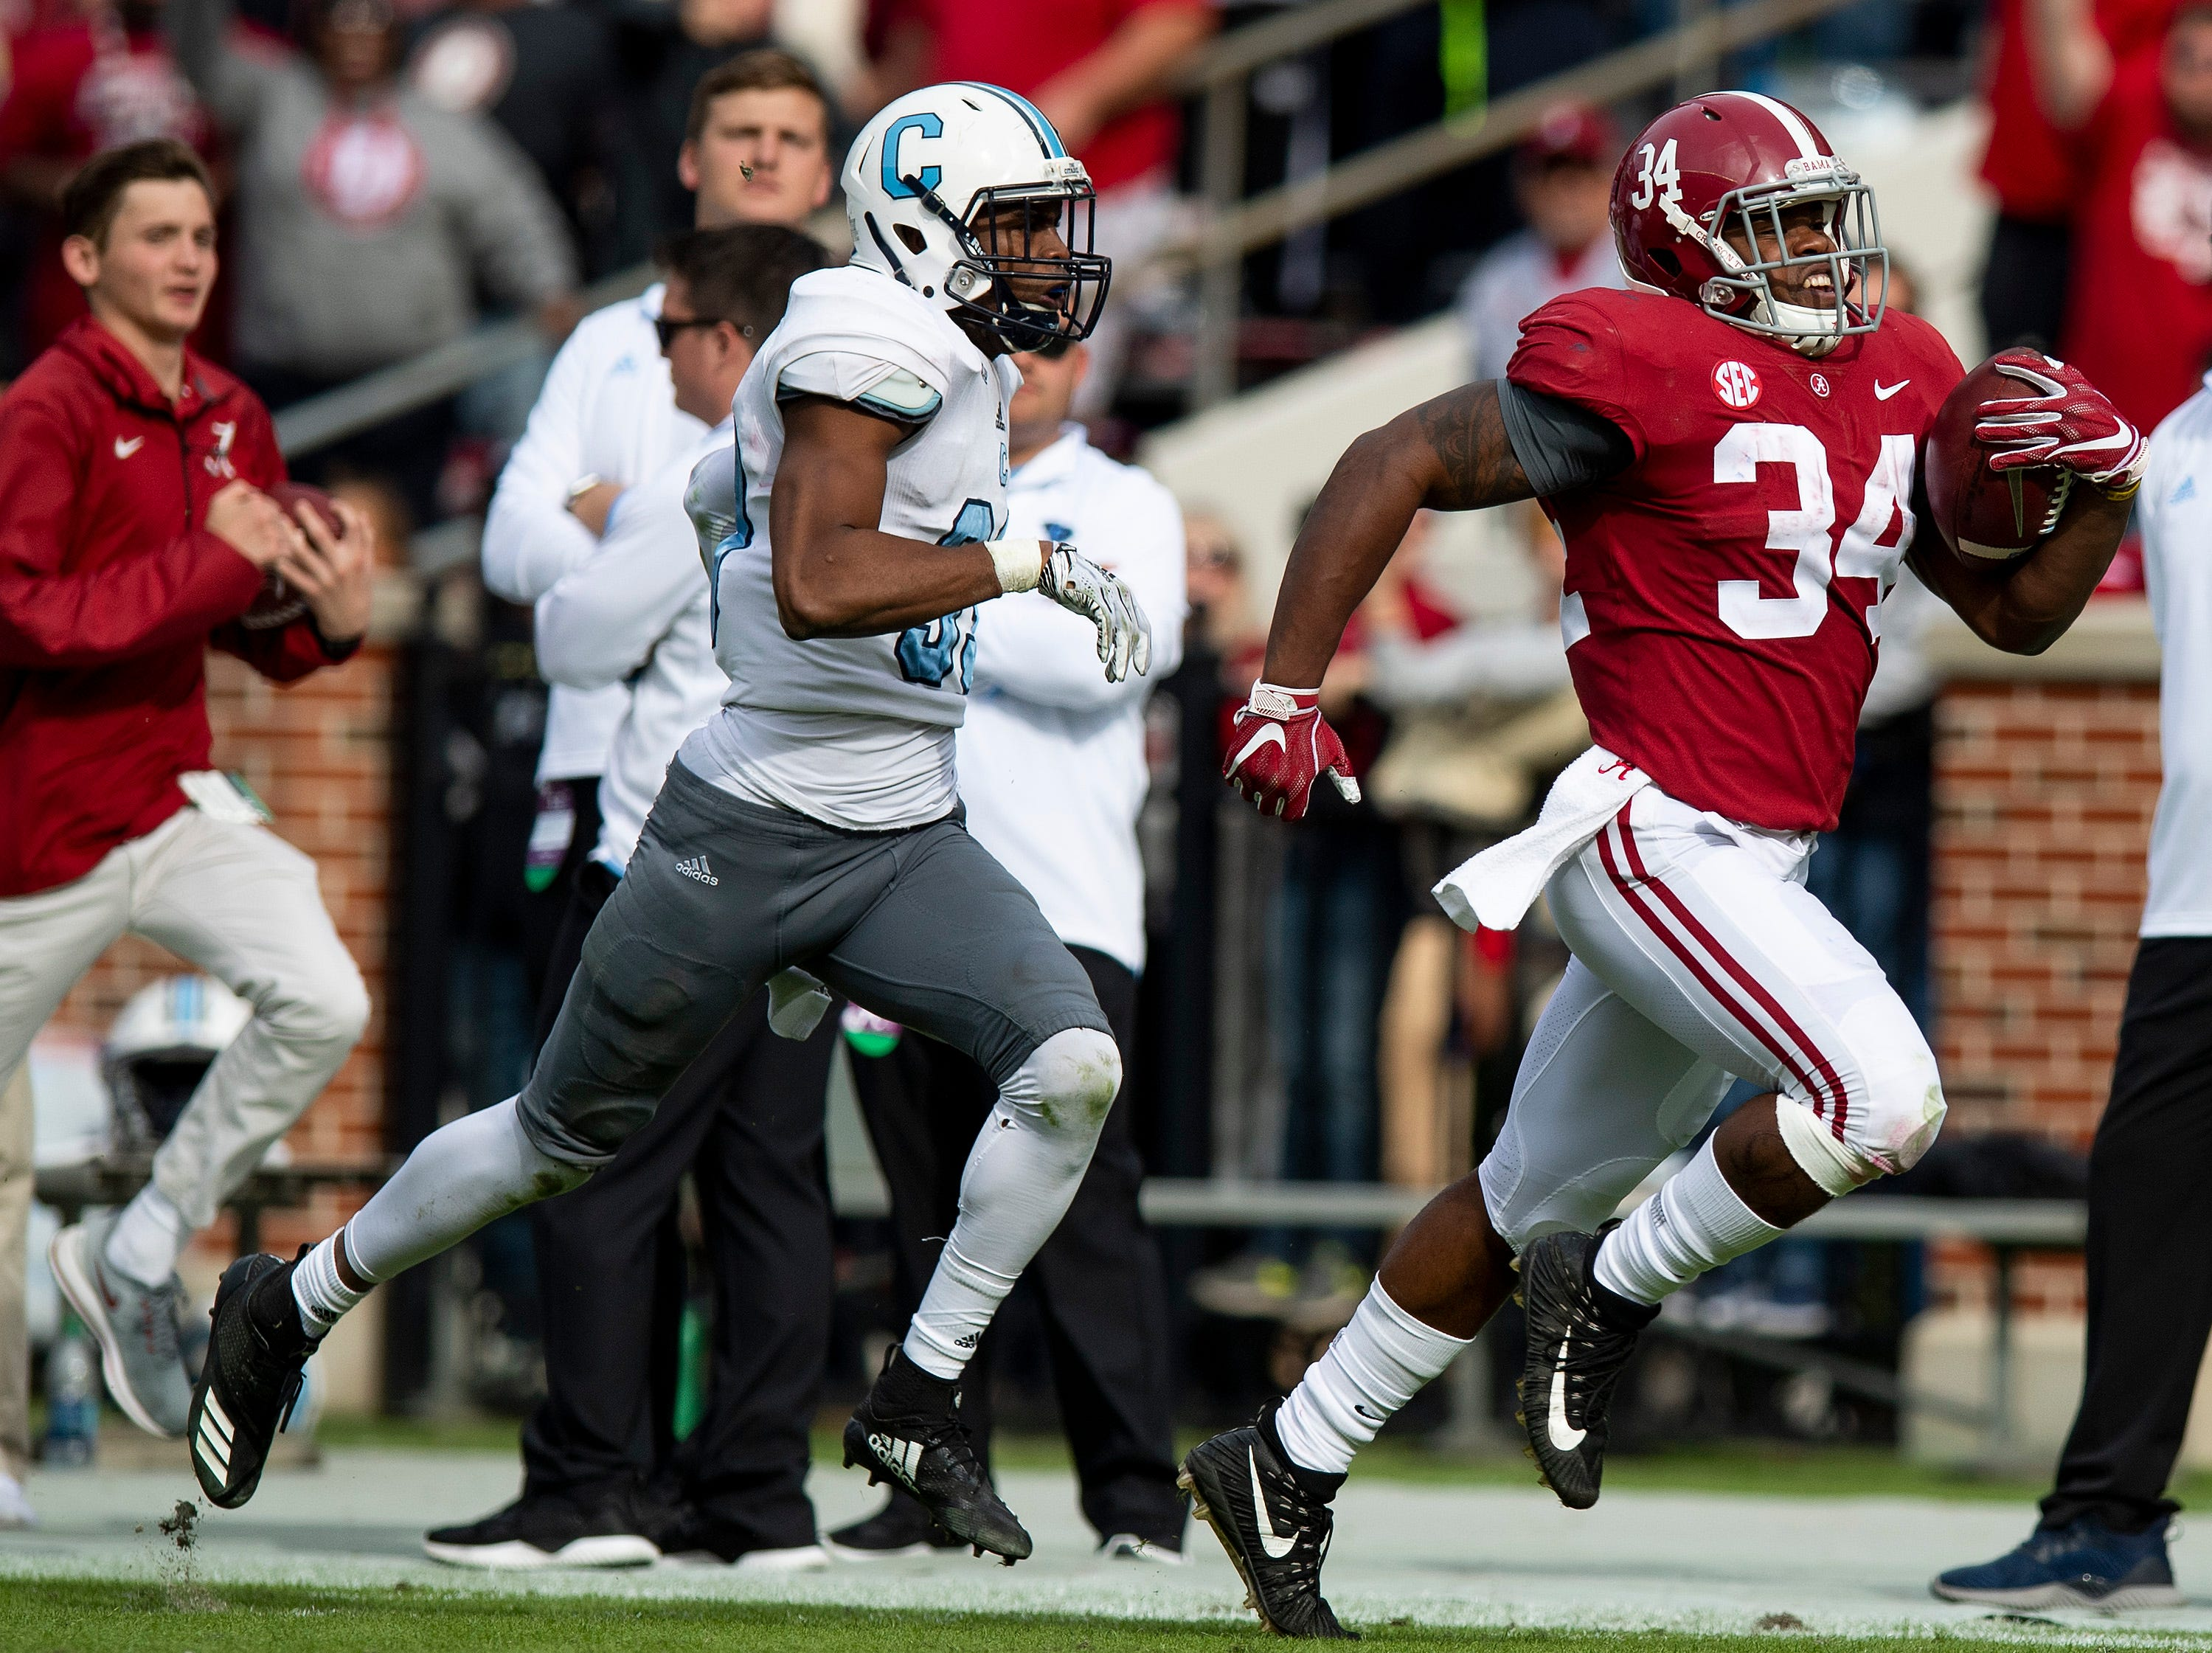 Citadel defensive back Ronald Peterkin (33)  chases down Alabama running back Damien Harris (34) in second half action at Bryant-Denny Stadium in Tuscaloosa, Ala., on Saturday November 17, 2018.